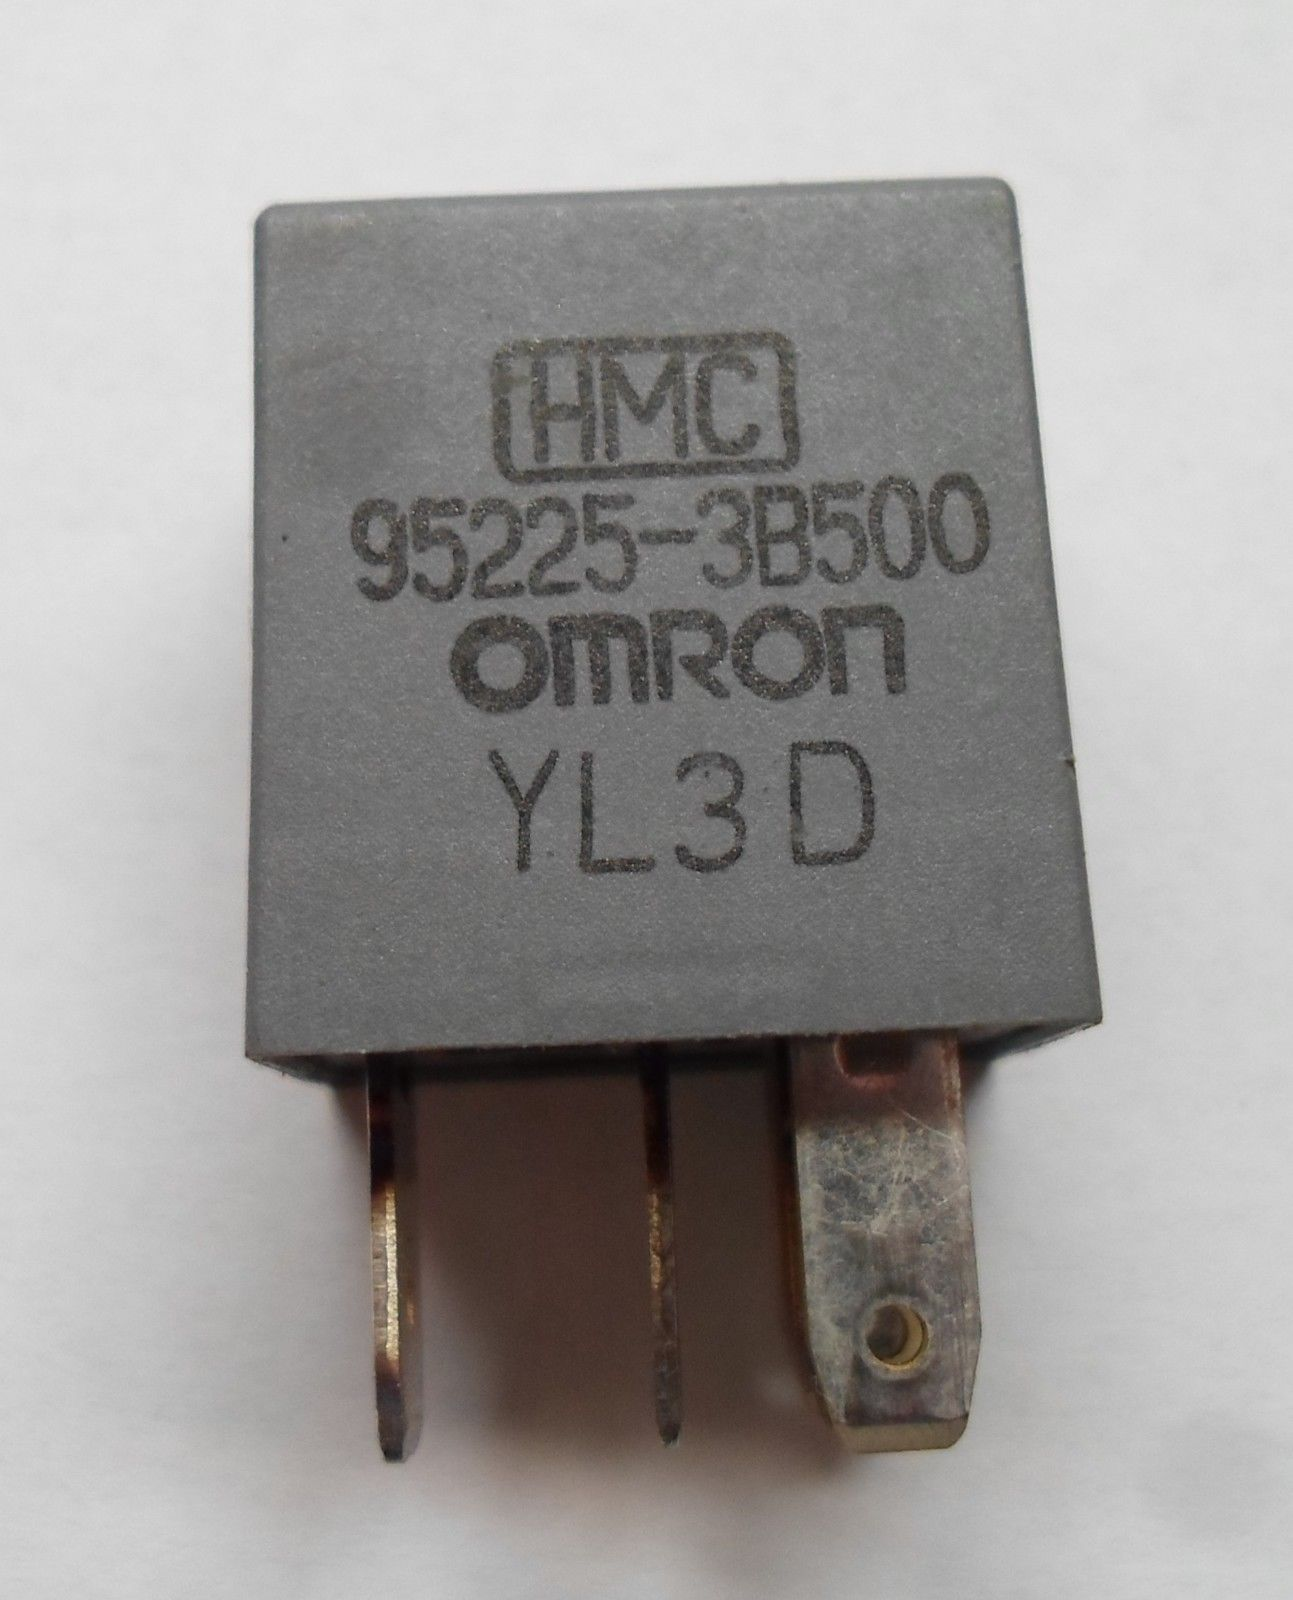 HYUNDAI RELAY 95225-3B500  TESTED 6 MONTH WARRANTY FREE SHIPPING HY1